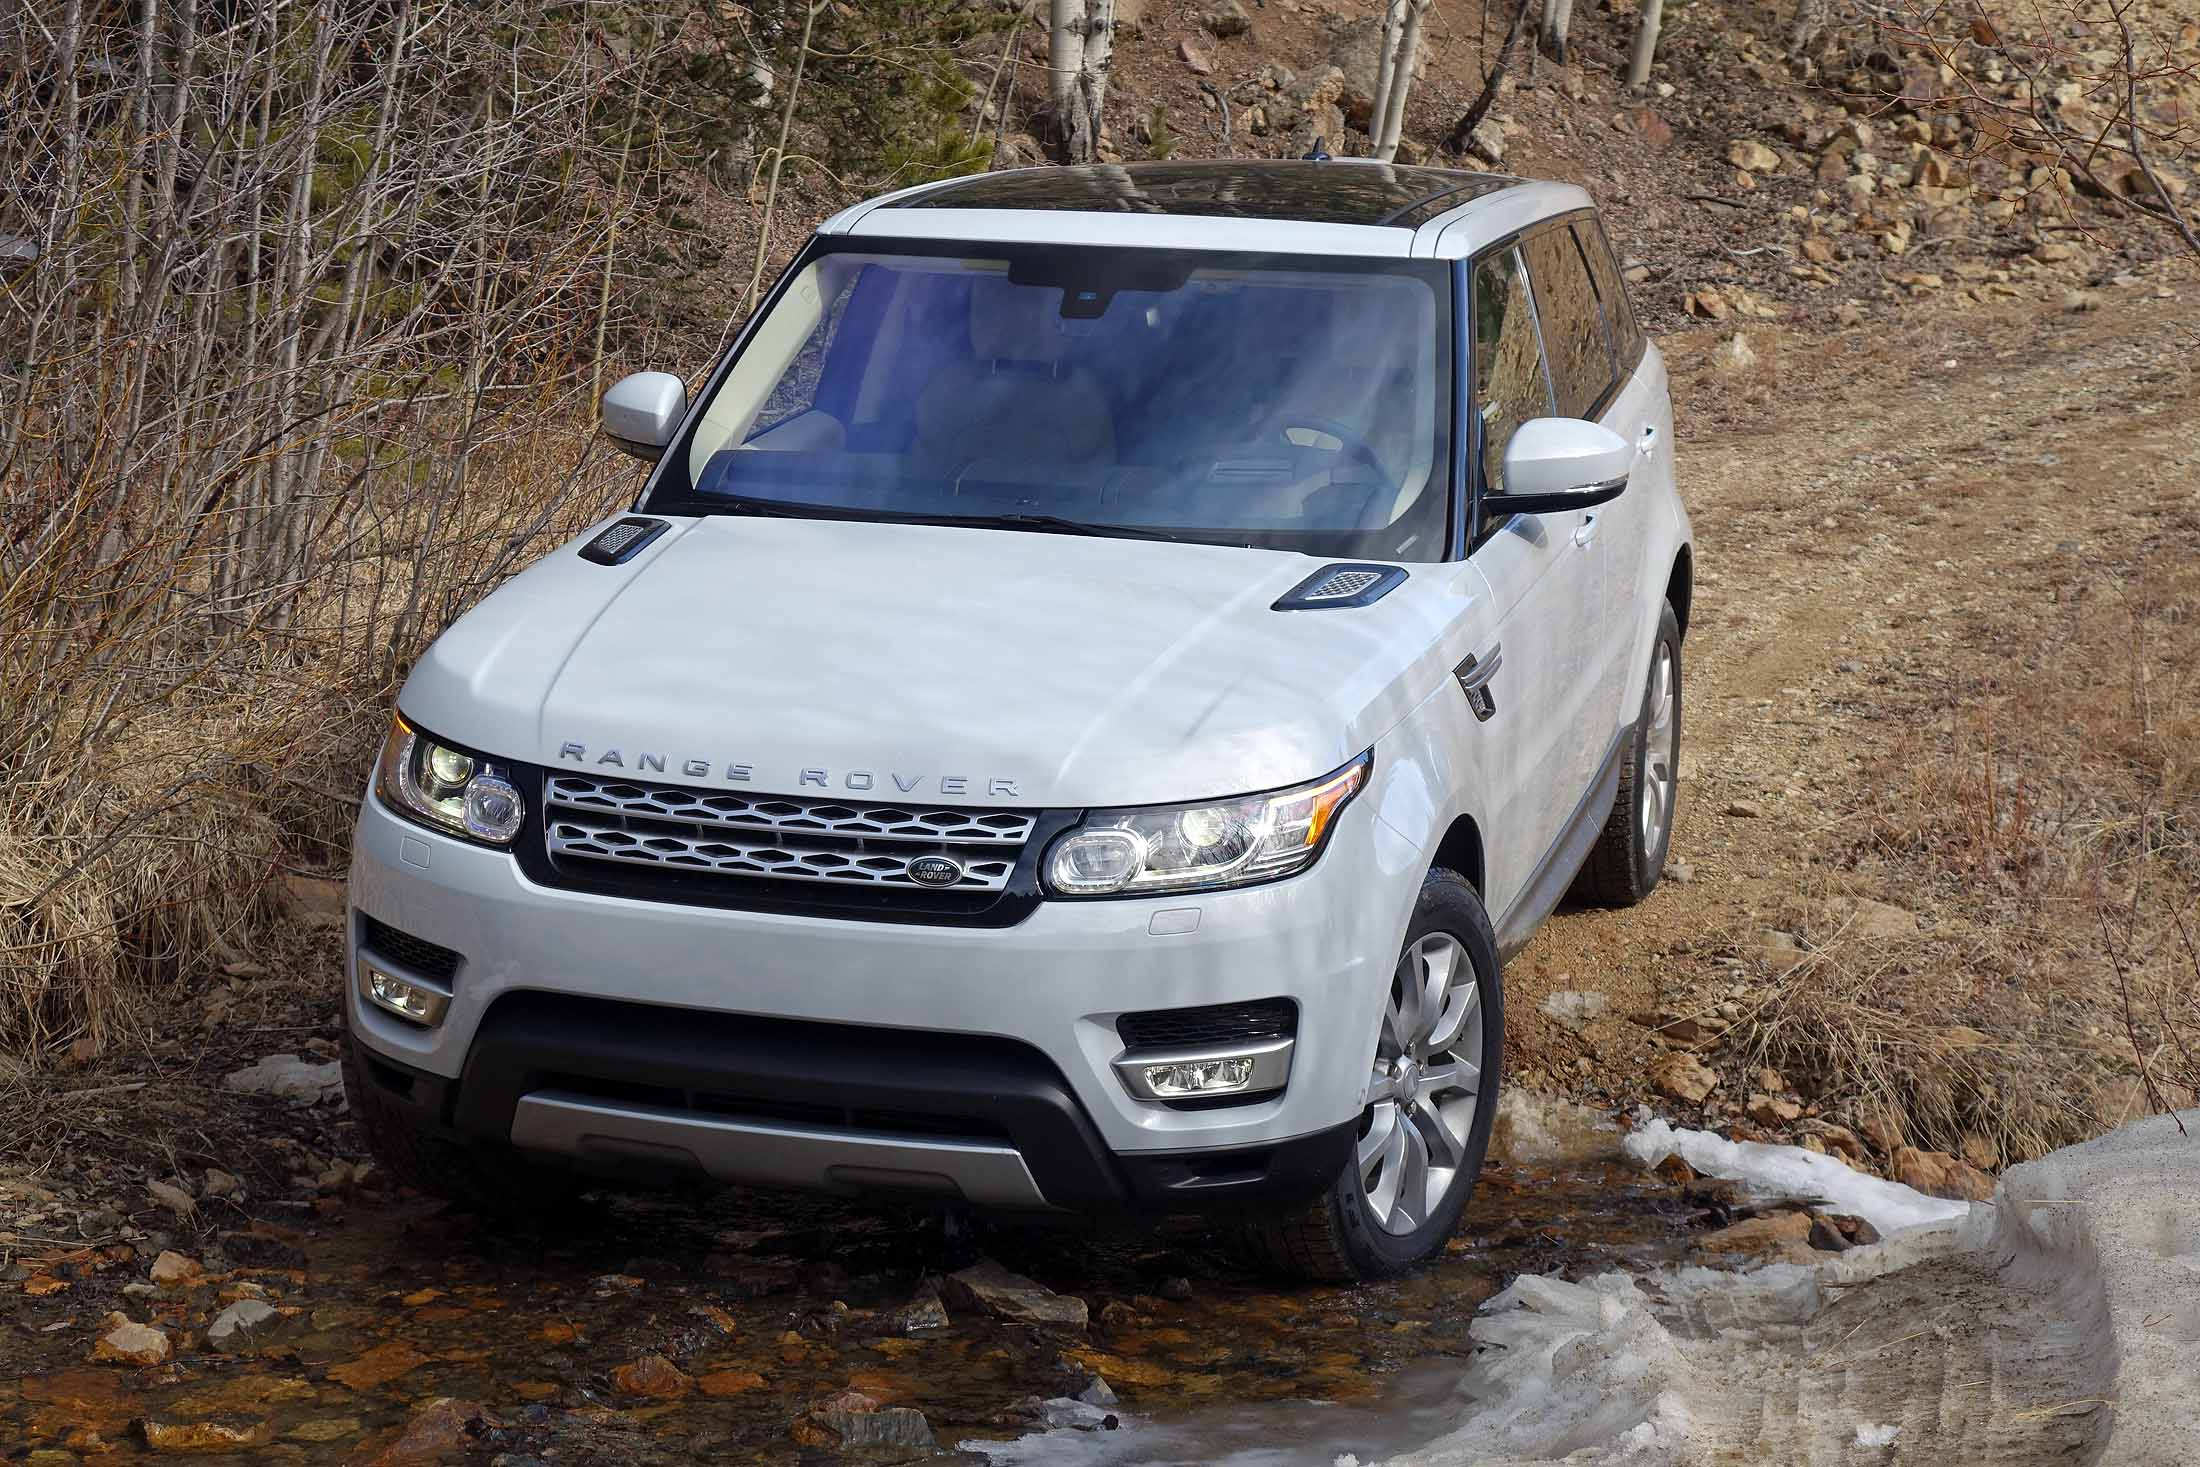 2016 Land Rover Range Sport Hse Td6 Fuel Economy Review Of Luxury Sel Suv